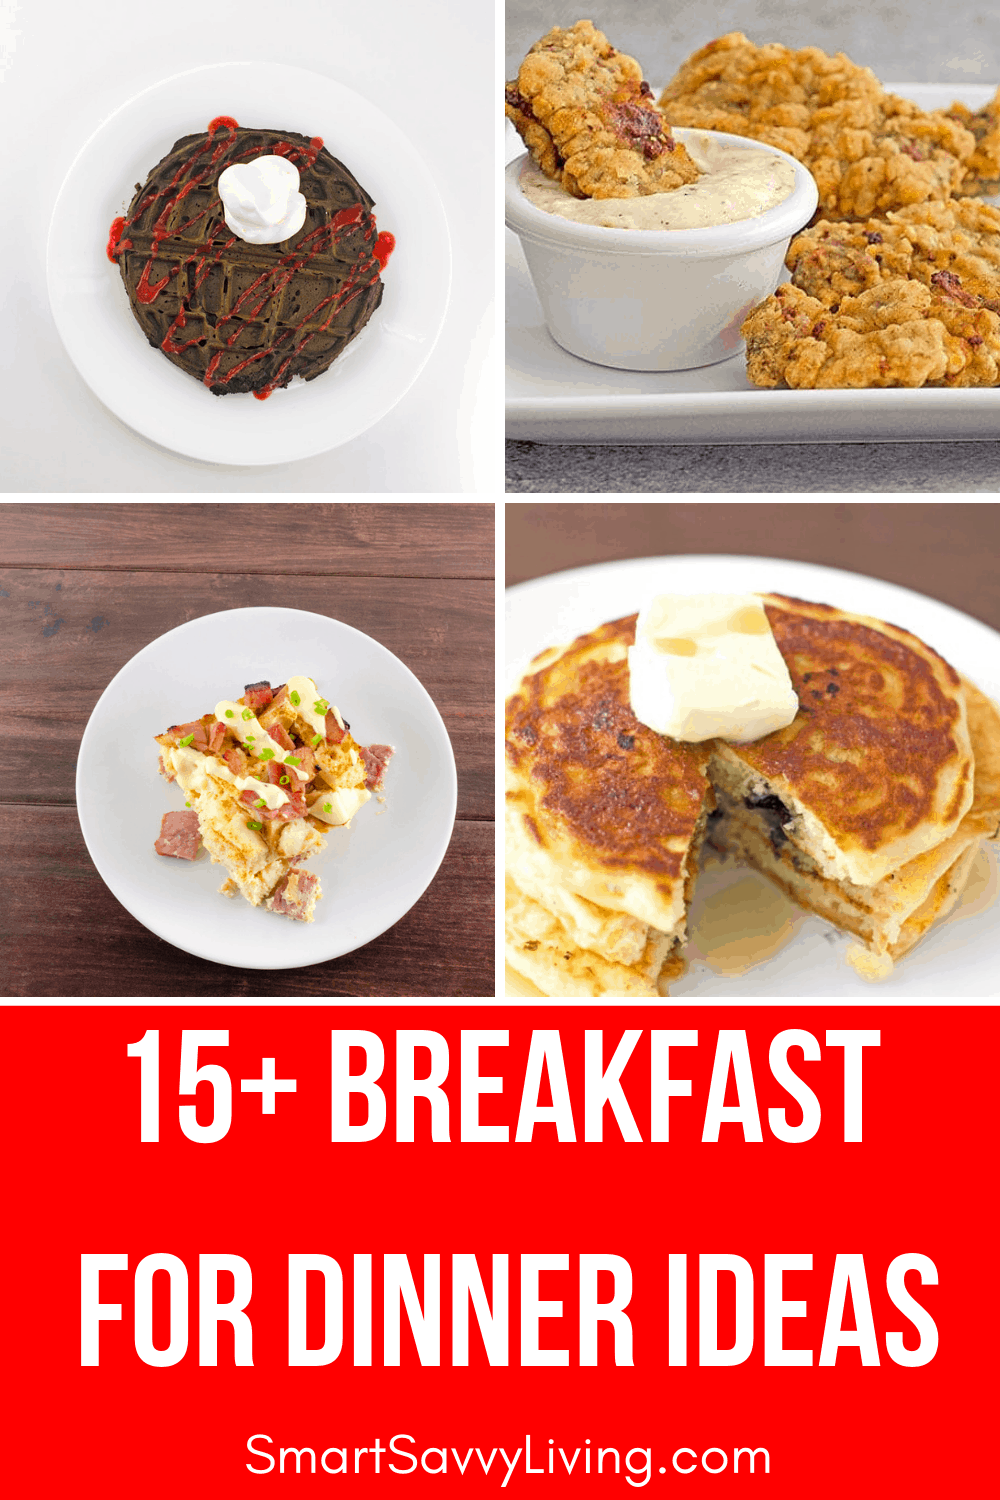 15+ Breakfast for Dinner Ideas 1